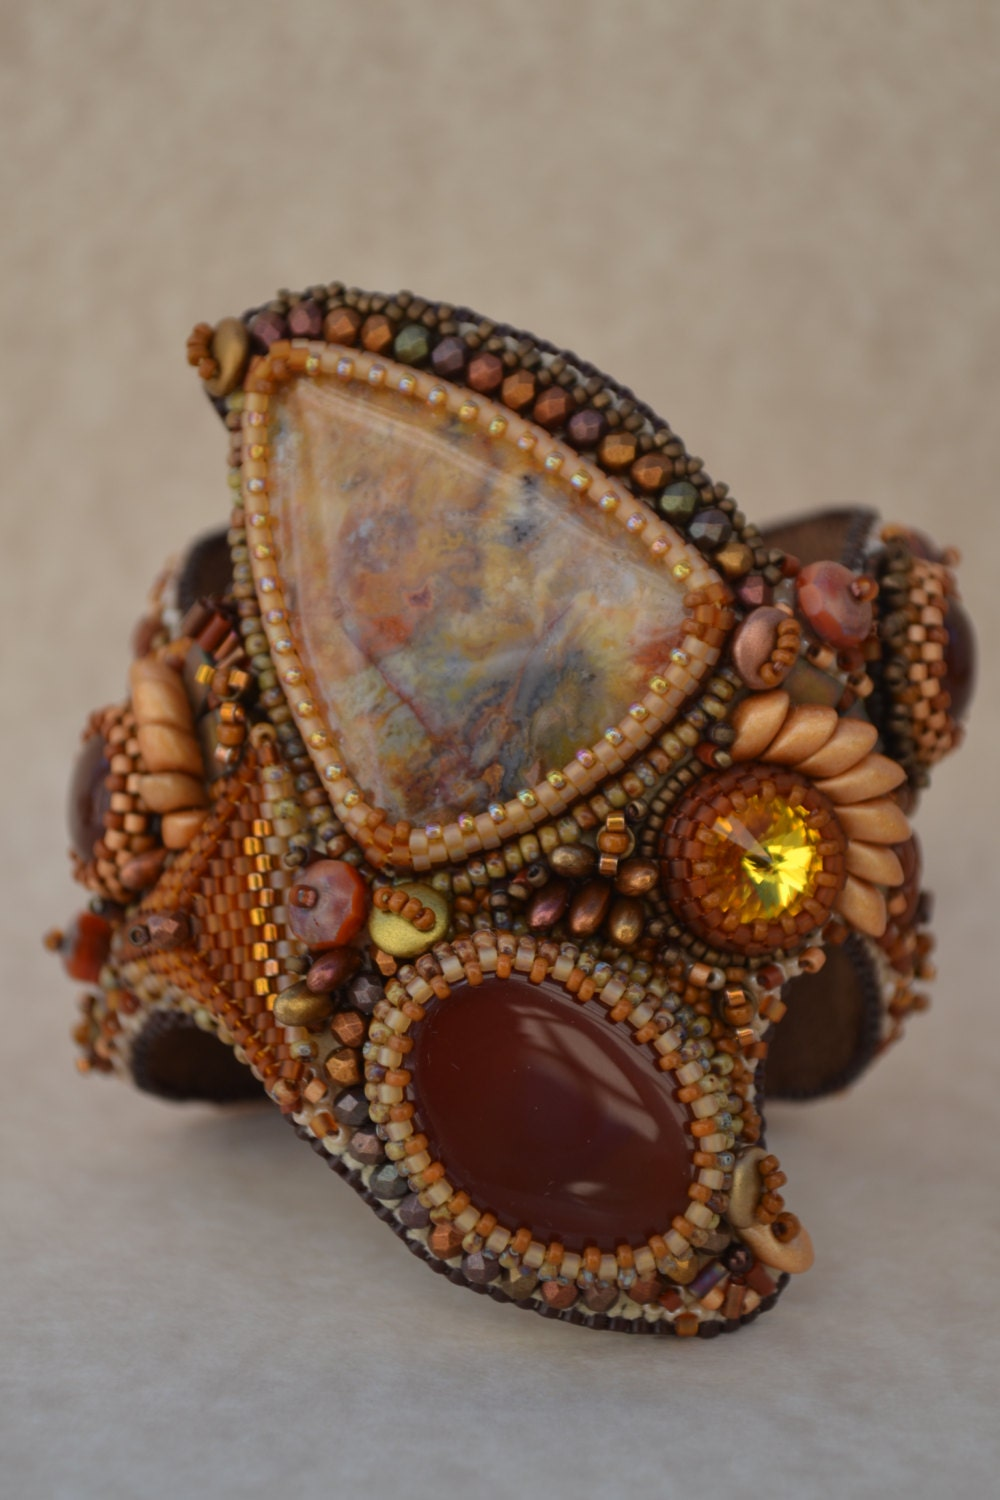 Bead Embroidered Bracelet Cuff Bead Embroidery Bracelet Cuff. 4 Stone Rings. Eaglemoss Watches. Mothers Jewelry. Wood Carving Necklace. Jeweled Rings. Diamond Gold Bracelet. Unlocked Watches. Best Seller Watches